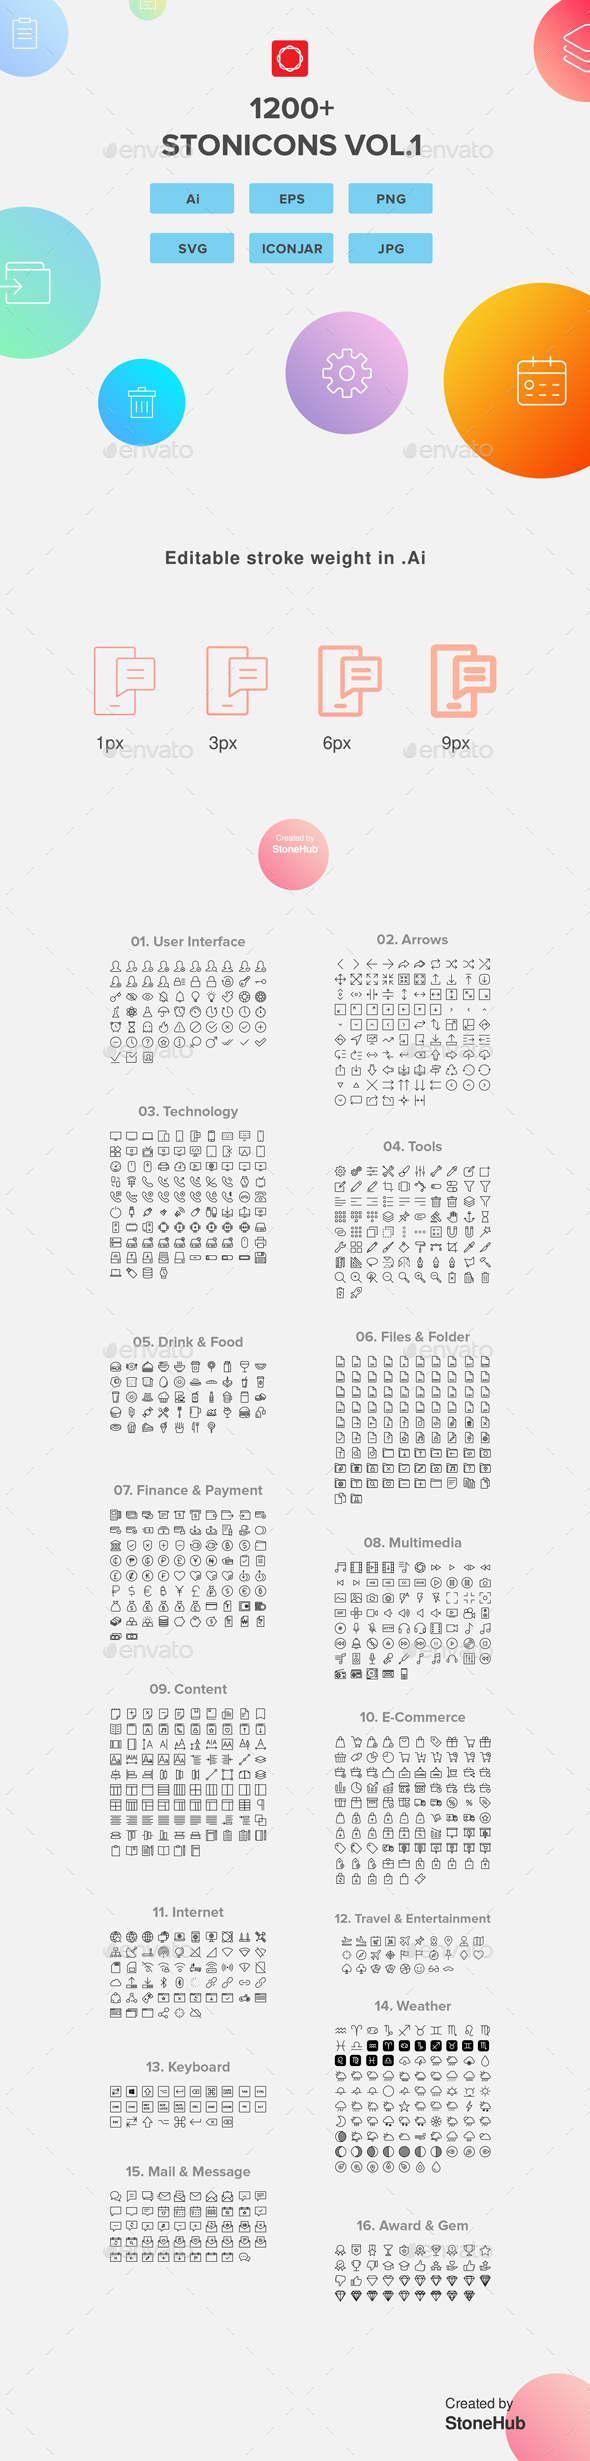 1200+ UI Design Vector Icons Pack - Web Icons